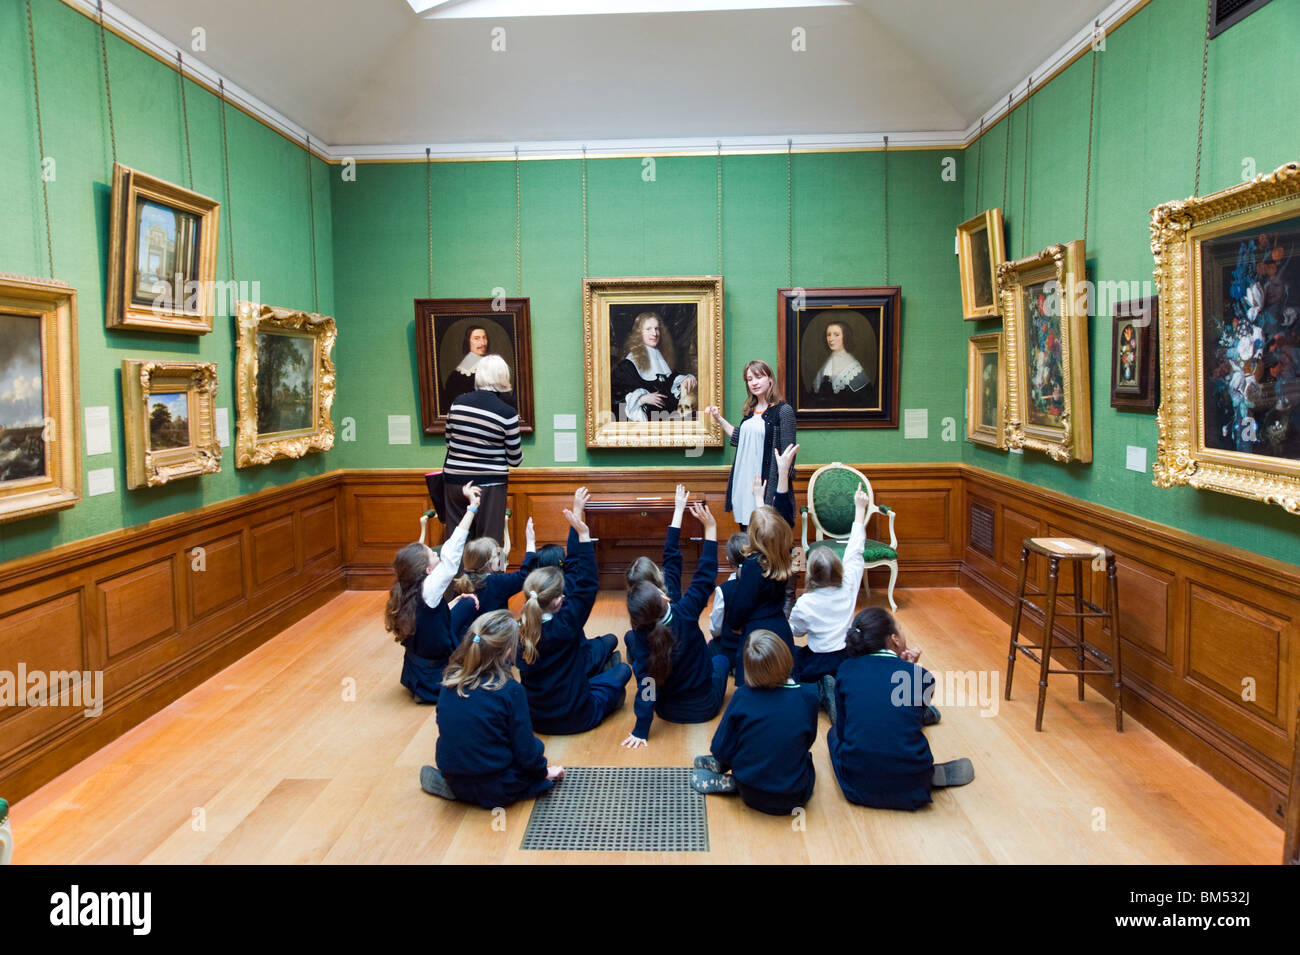 Schoolchildren raising their hands on educational school trip to The Dulwich Picture Gallery, London, England, UK - Stock Image